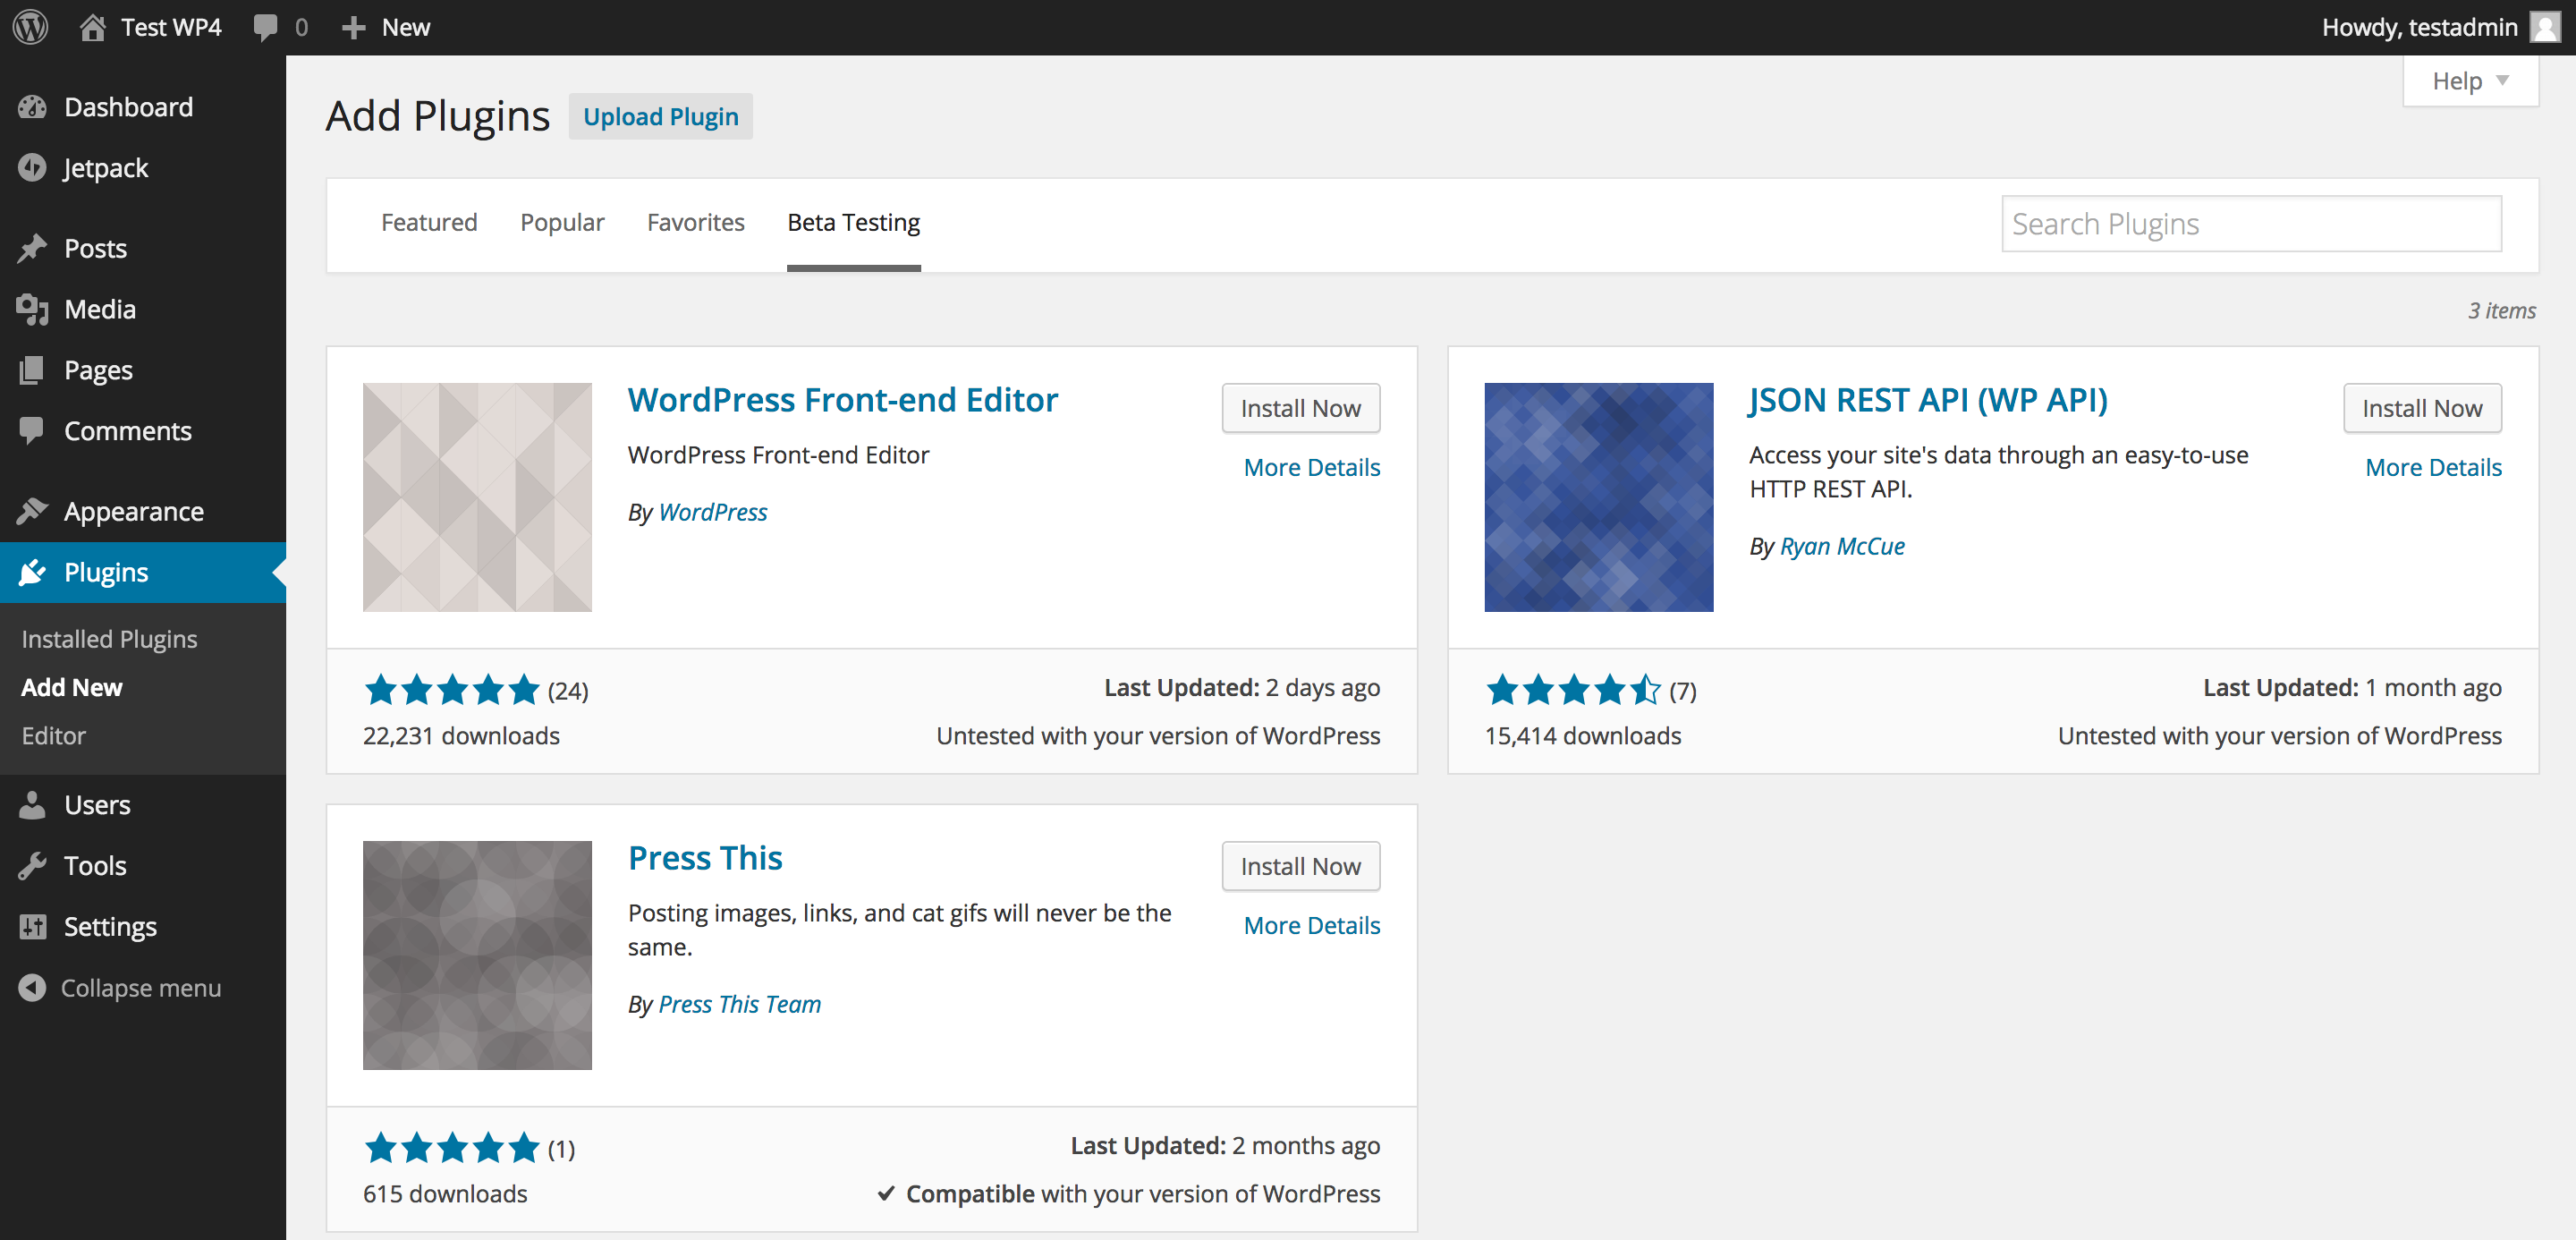 WordPress 4.0 Beta Plugins